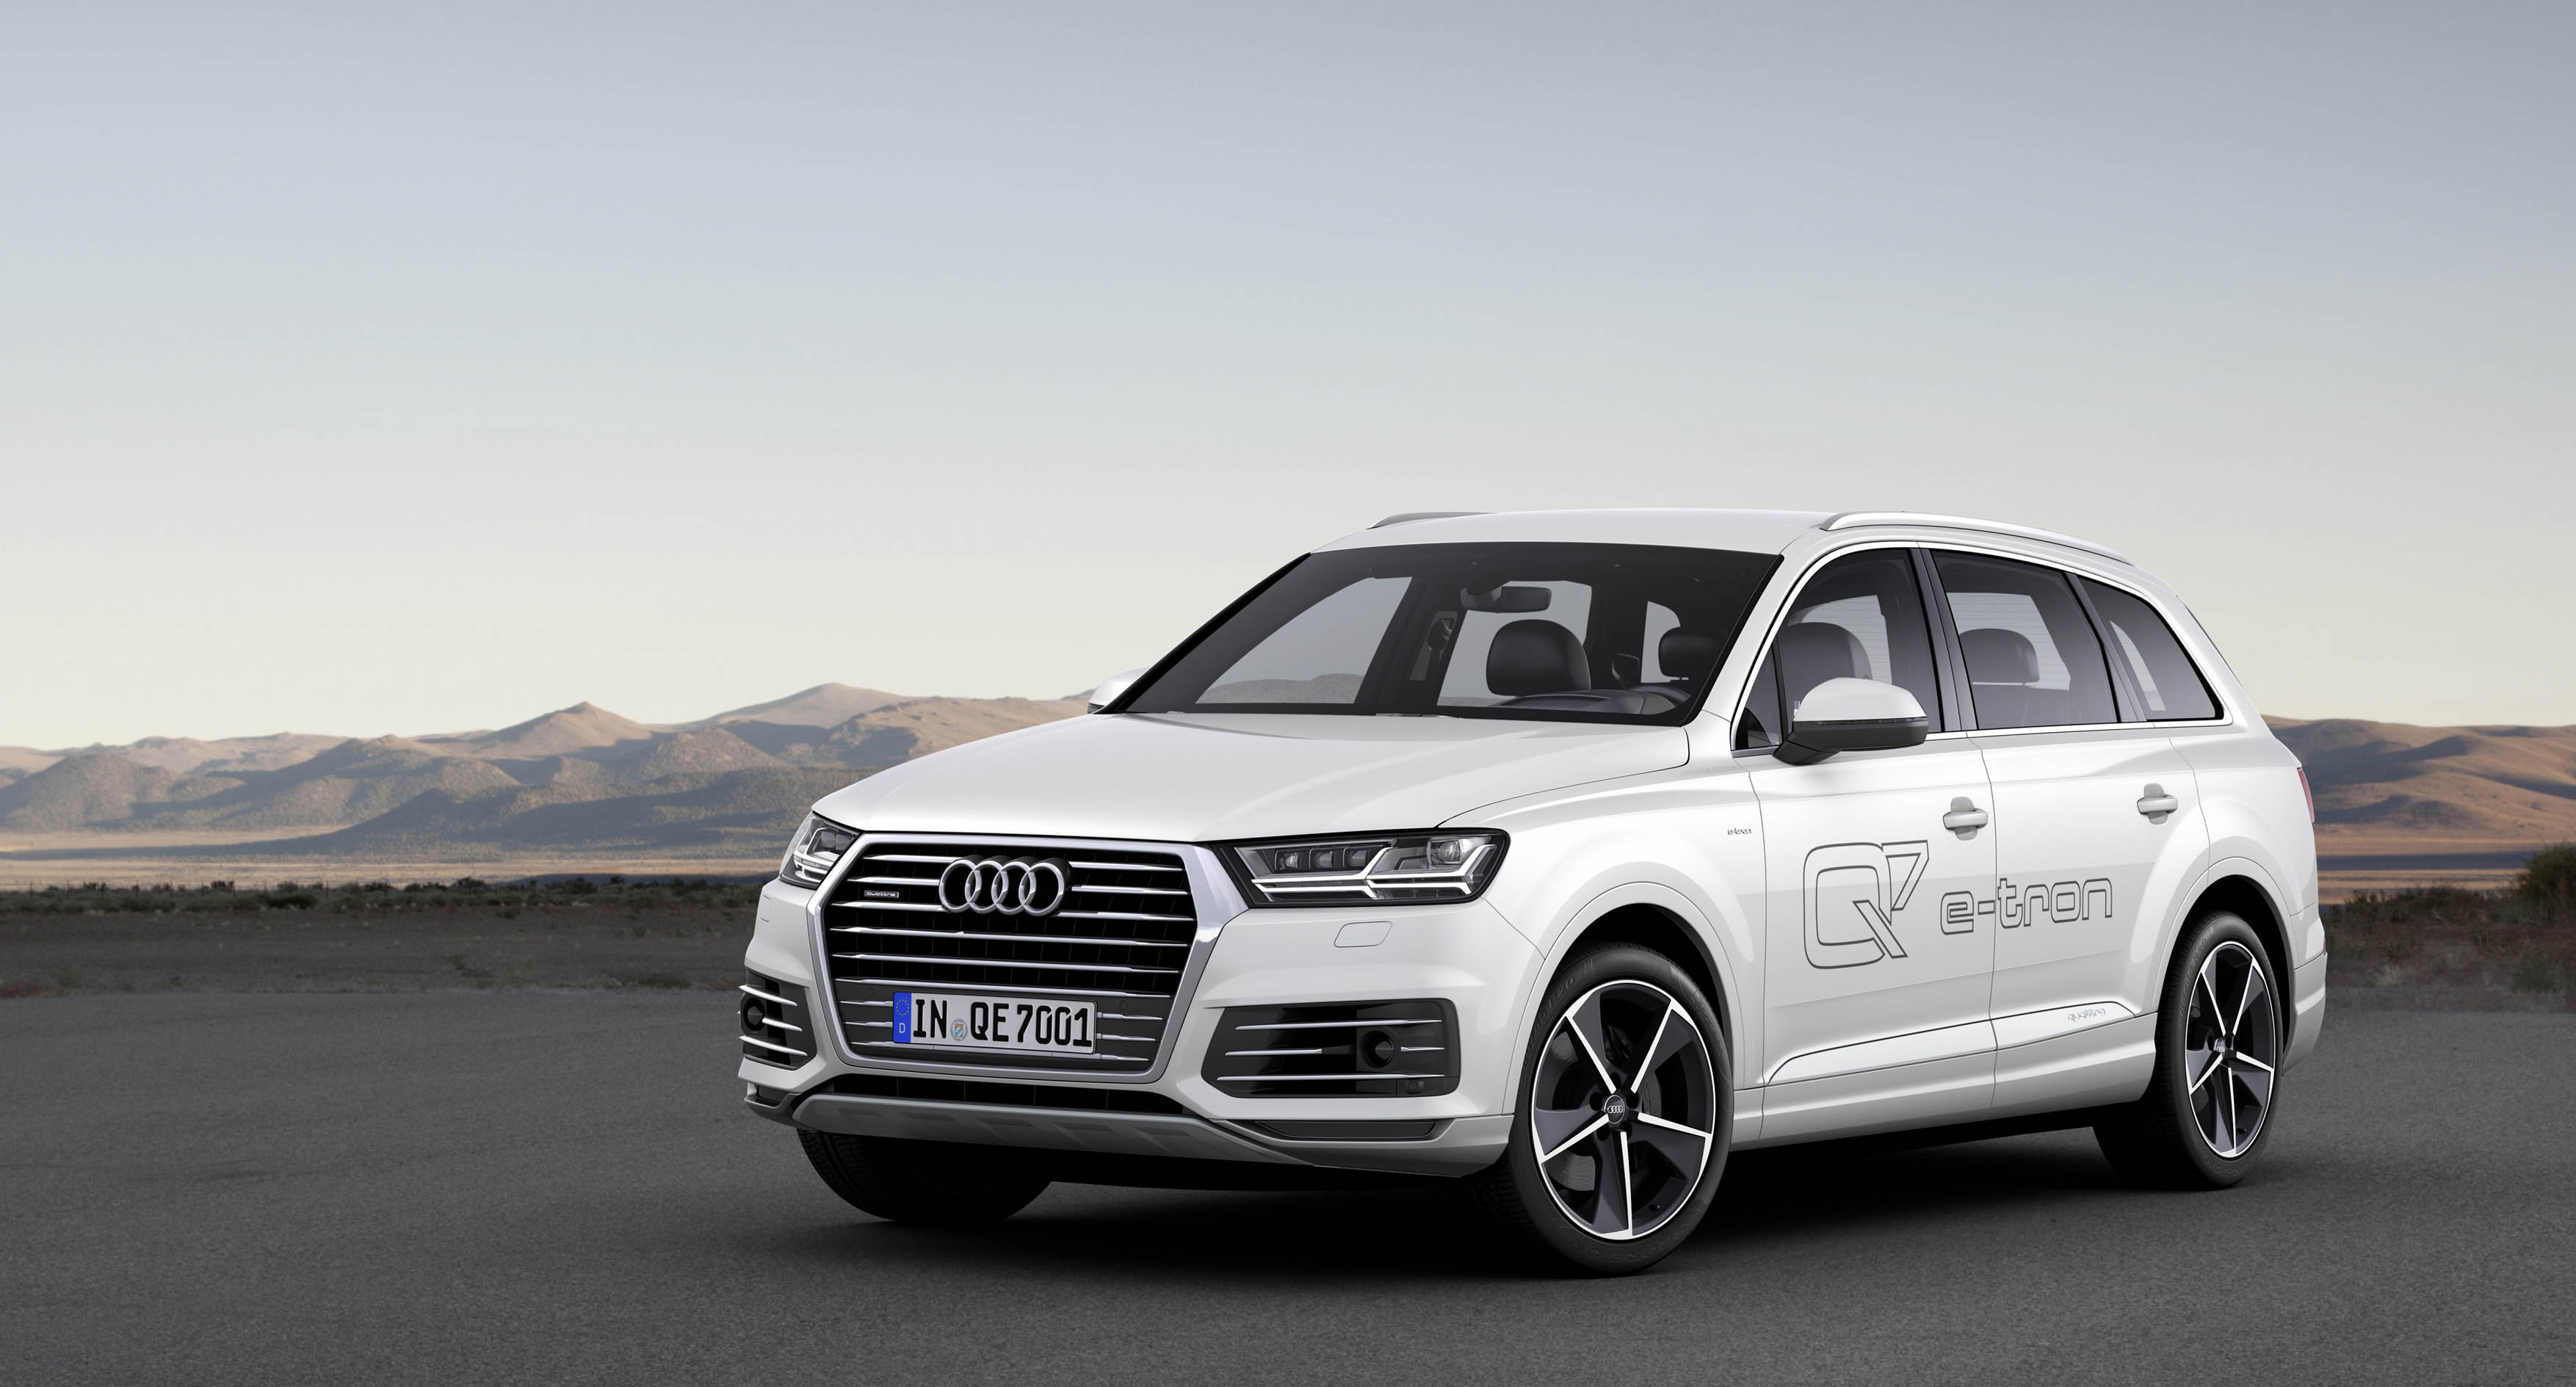 audi q7 e tron quattro 39 s werelds eerste plug in hybride met zescilinder diesel drivessential. Black Bedroom Furniture Sets. Home Design Ideas